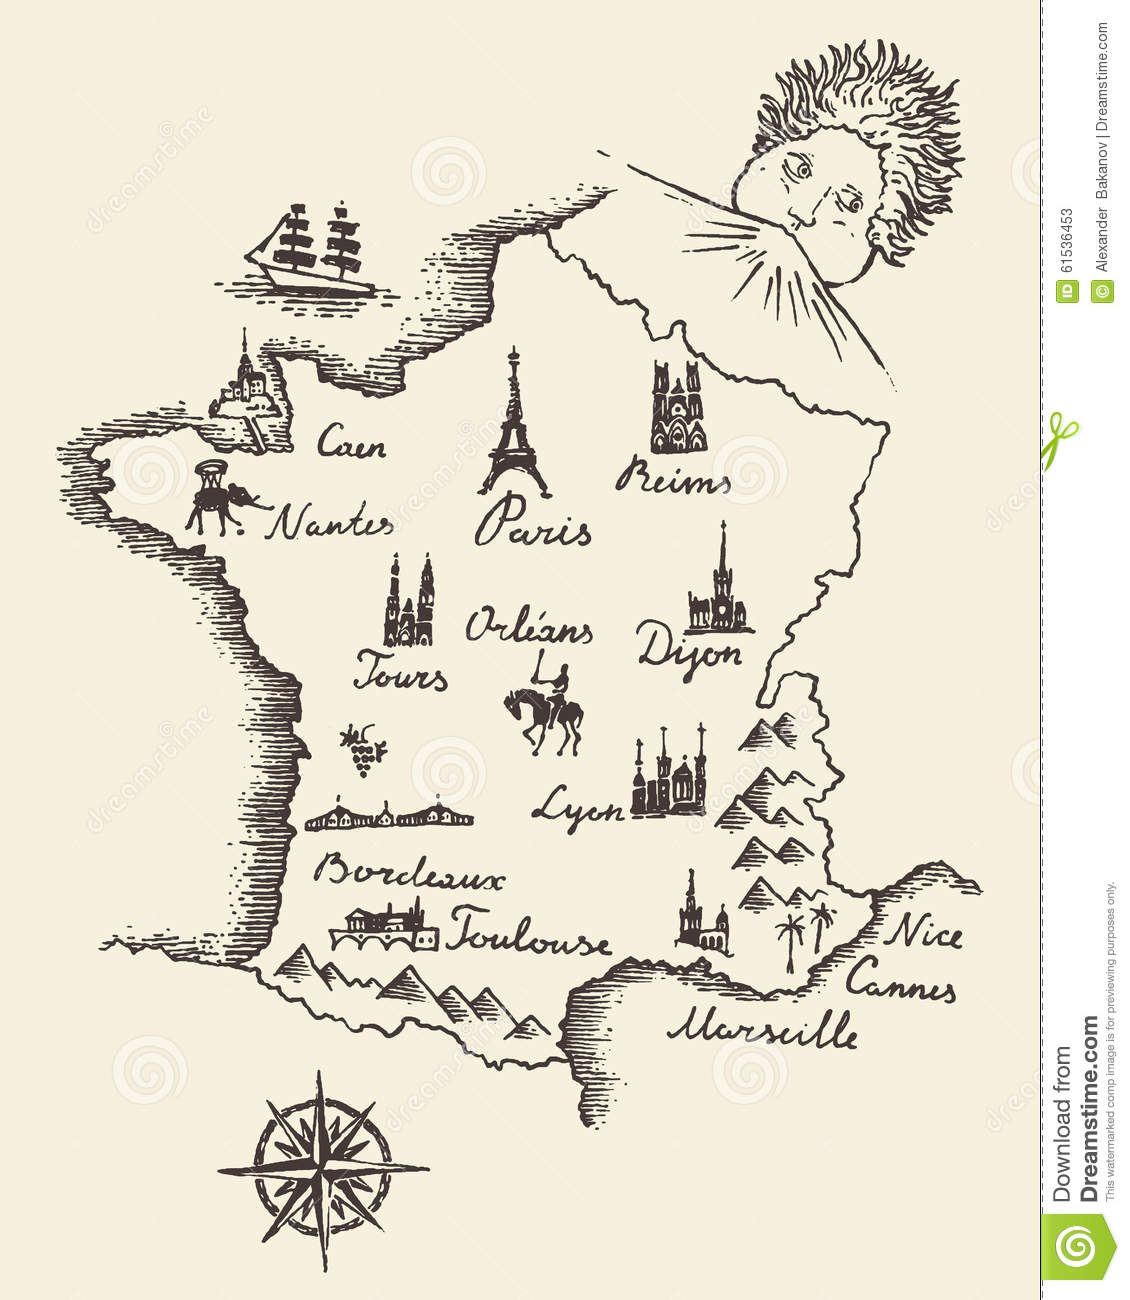 Map Of France Drawing.Map Of France Vintage Engraved Illustration Sketch Stock Vector